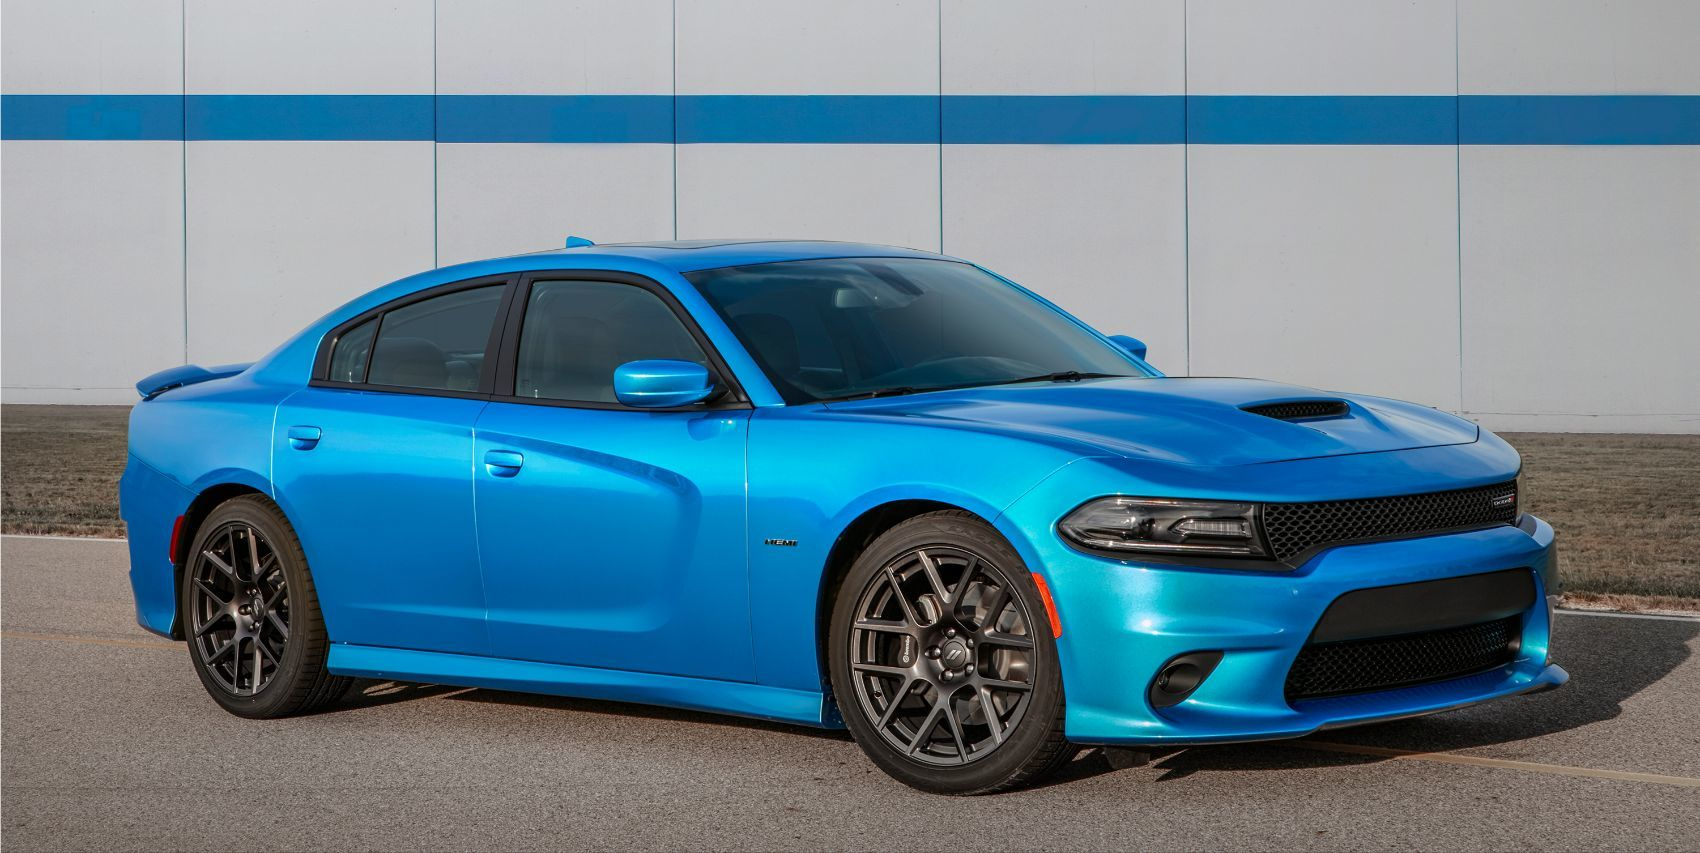 2020 Dodge Charger Lineup Specs Pricing Everything In Between